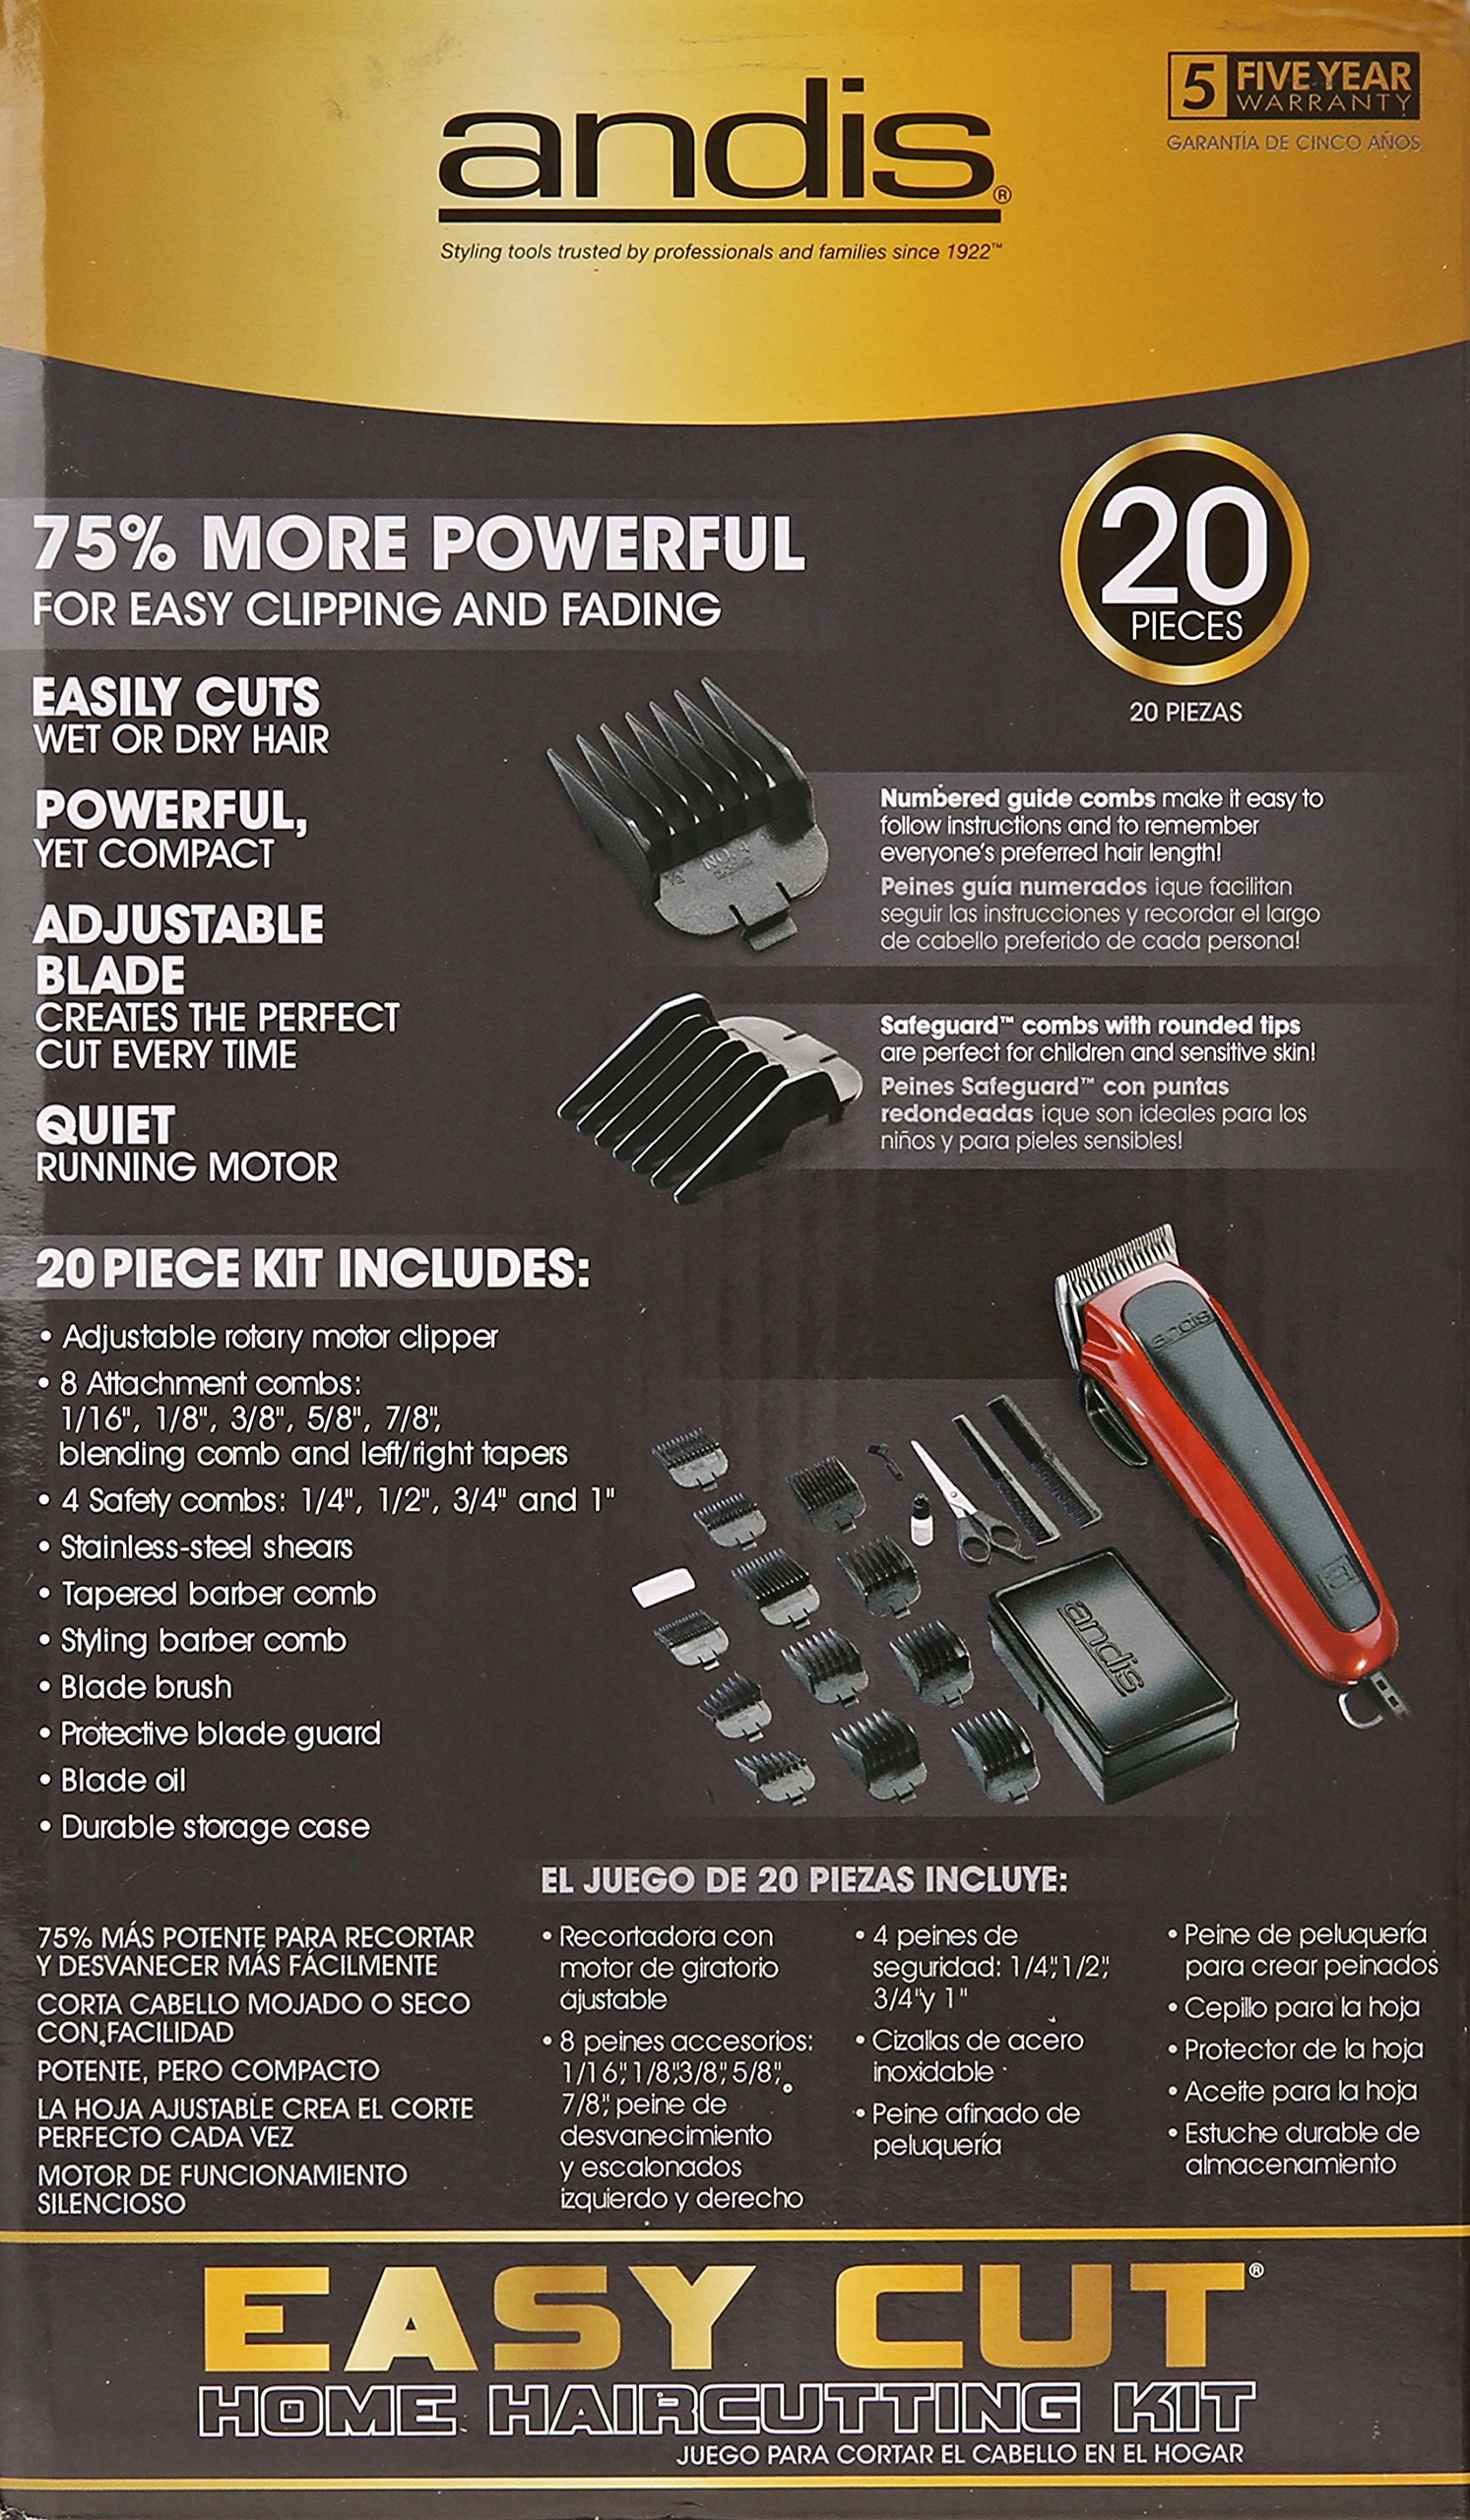 Andis Easy Cut 20-Piece Haircutting Kit, Red/Black (75360) by Andis (Image #6)